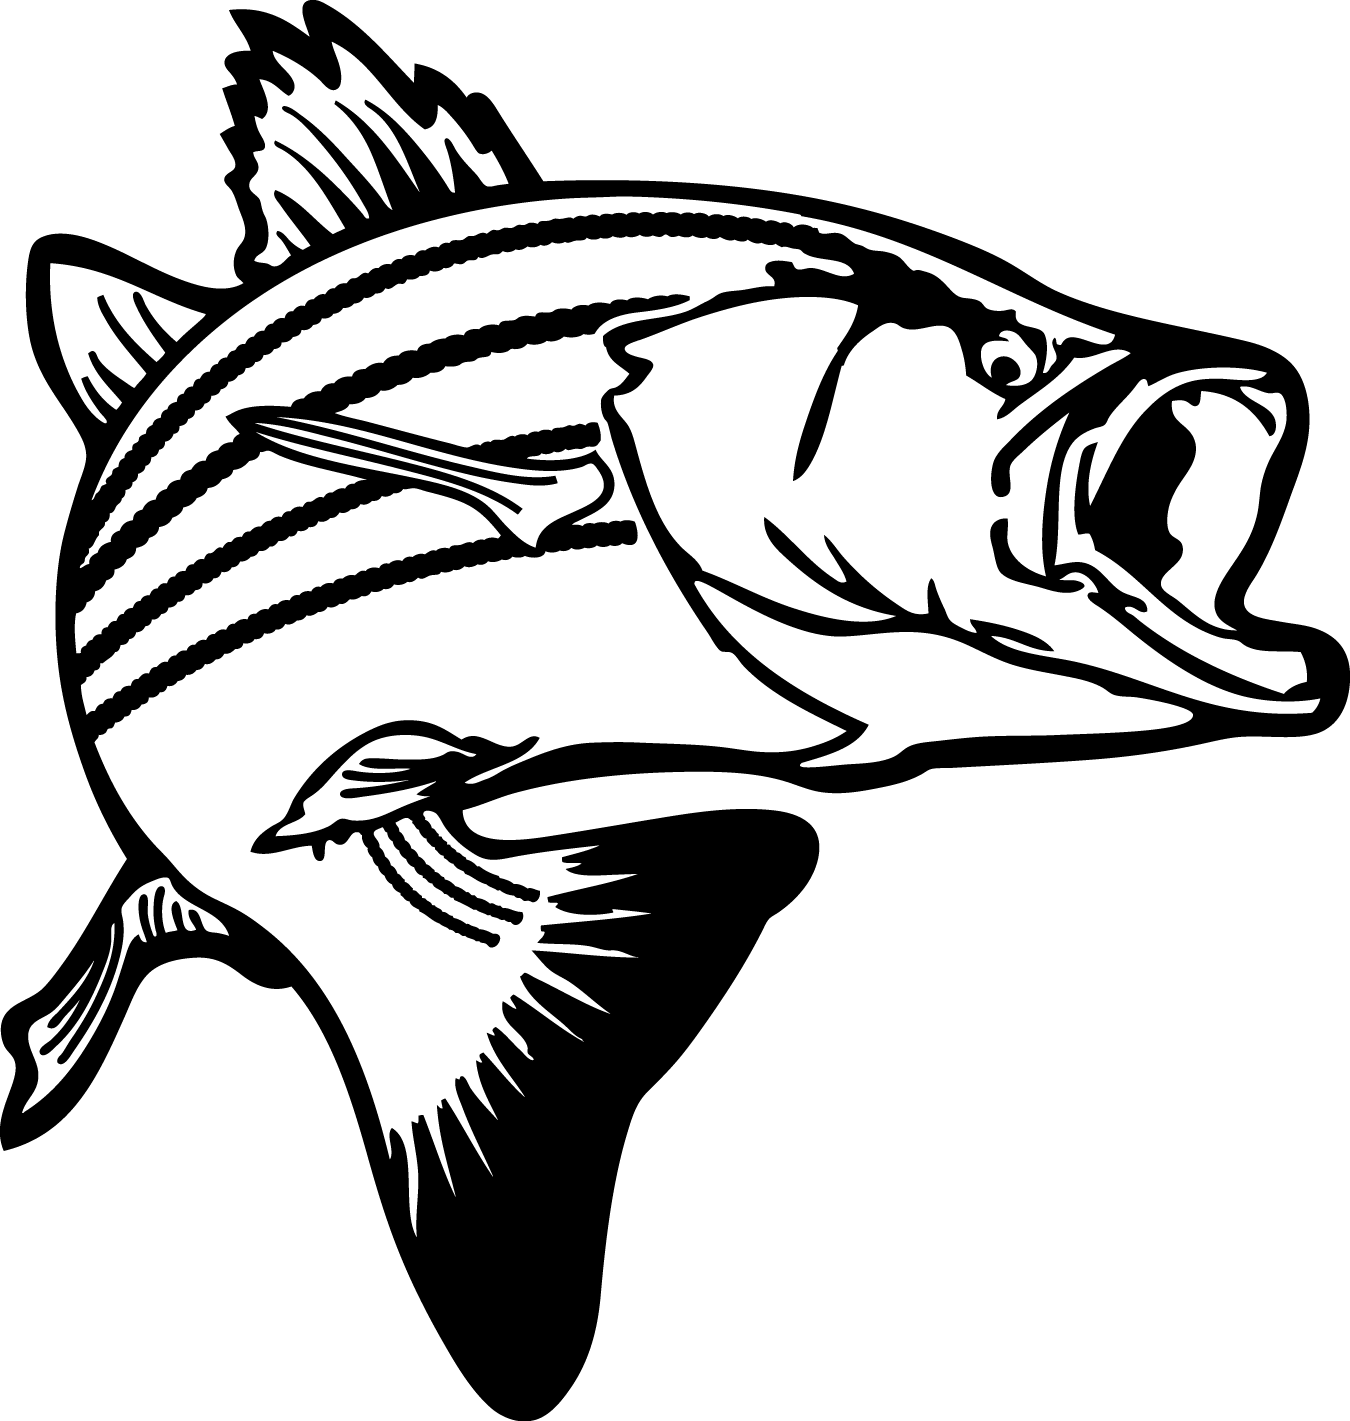 Bass fish coloring pages. Hunting clipart outdoorsman